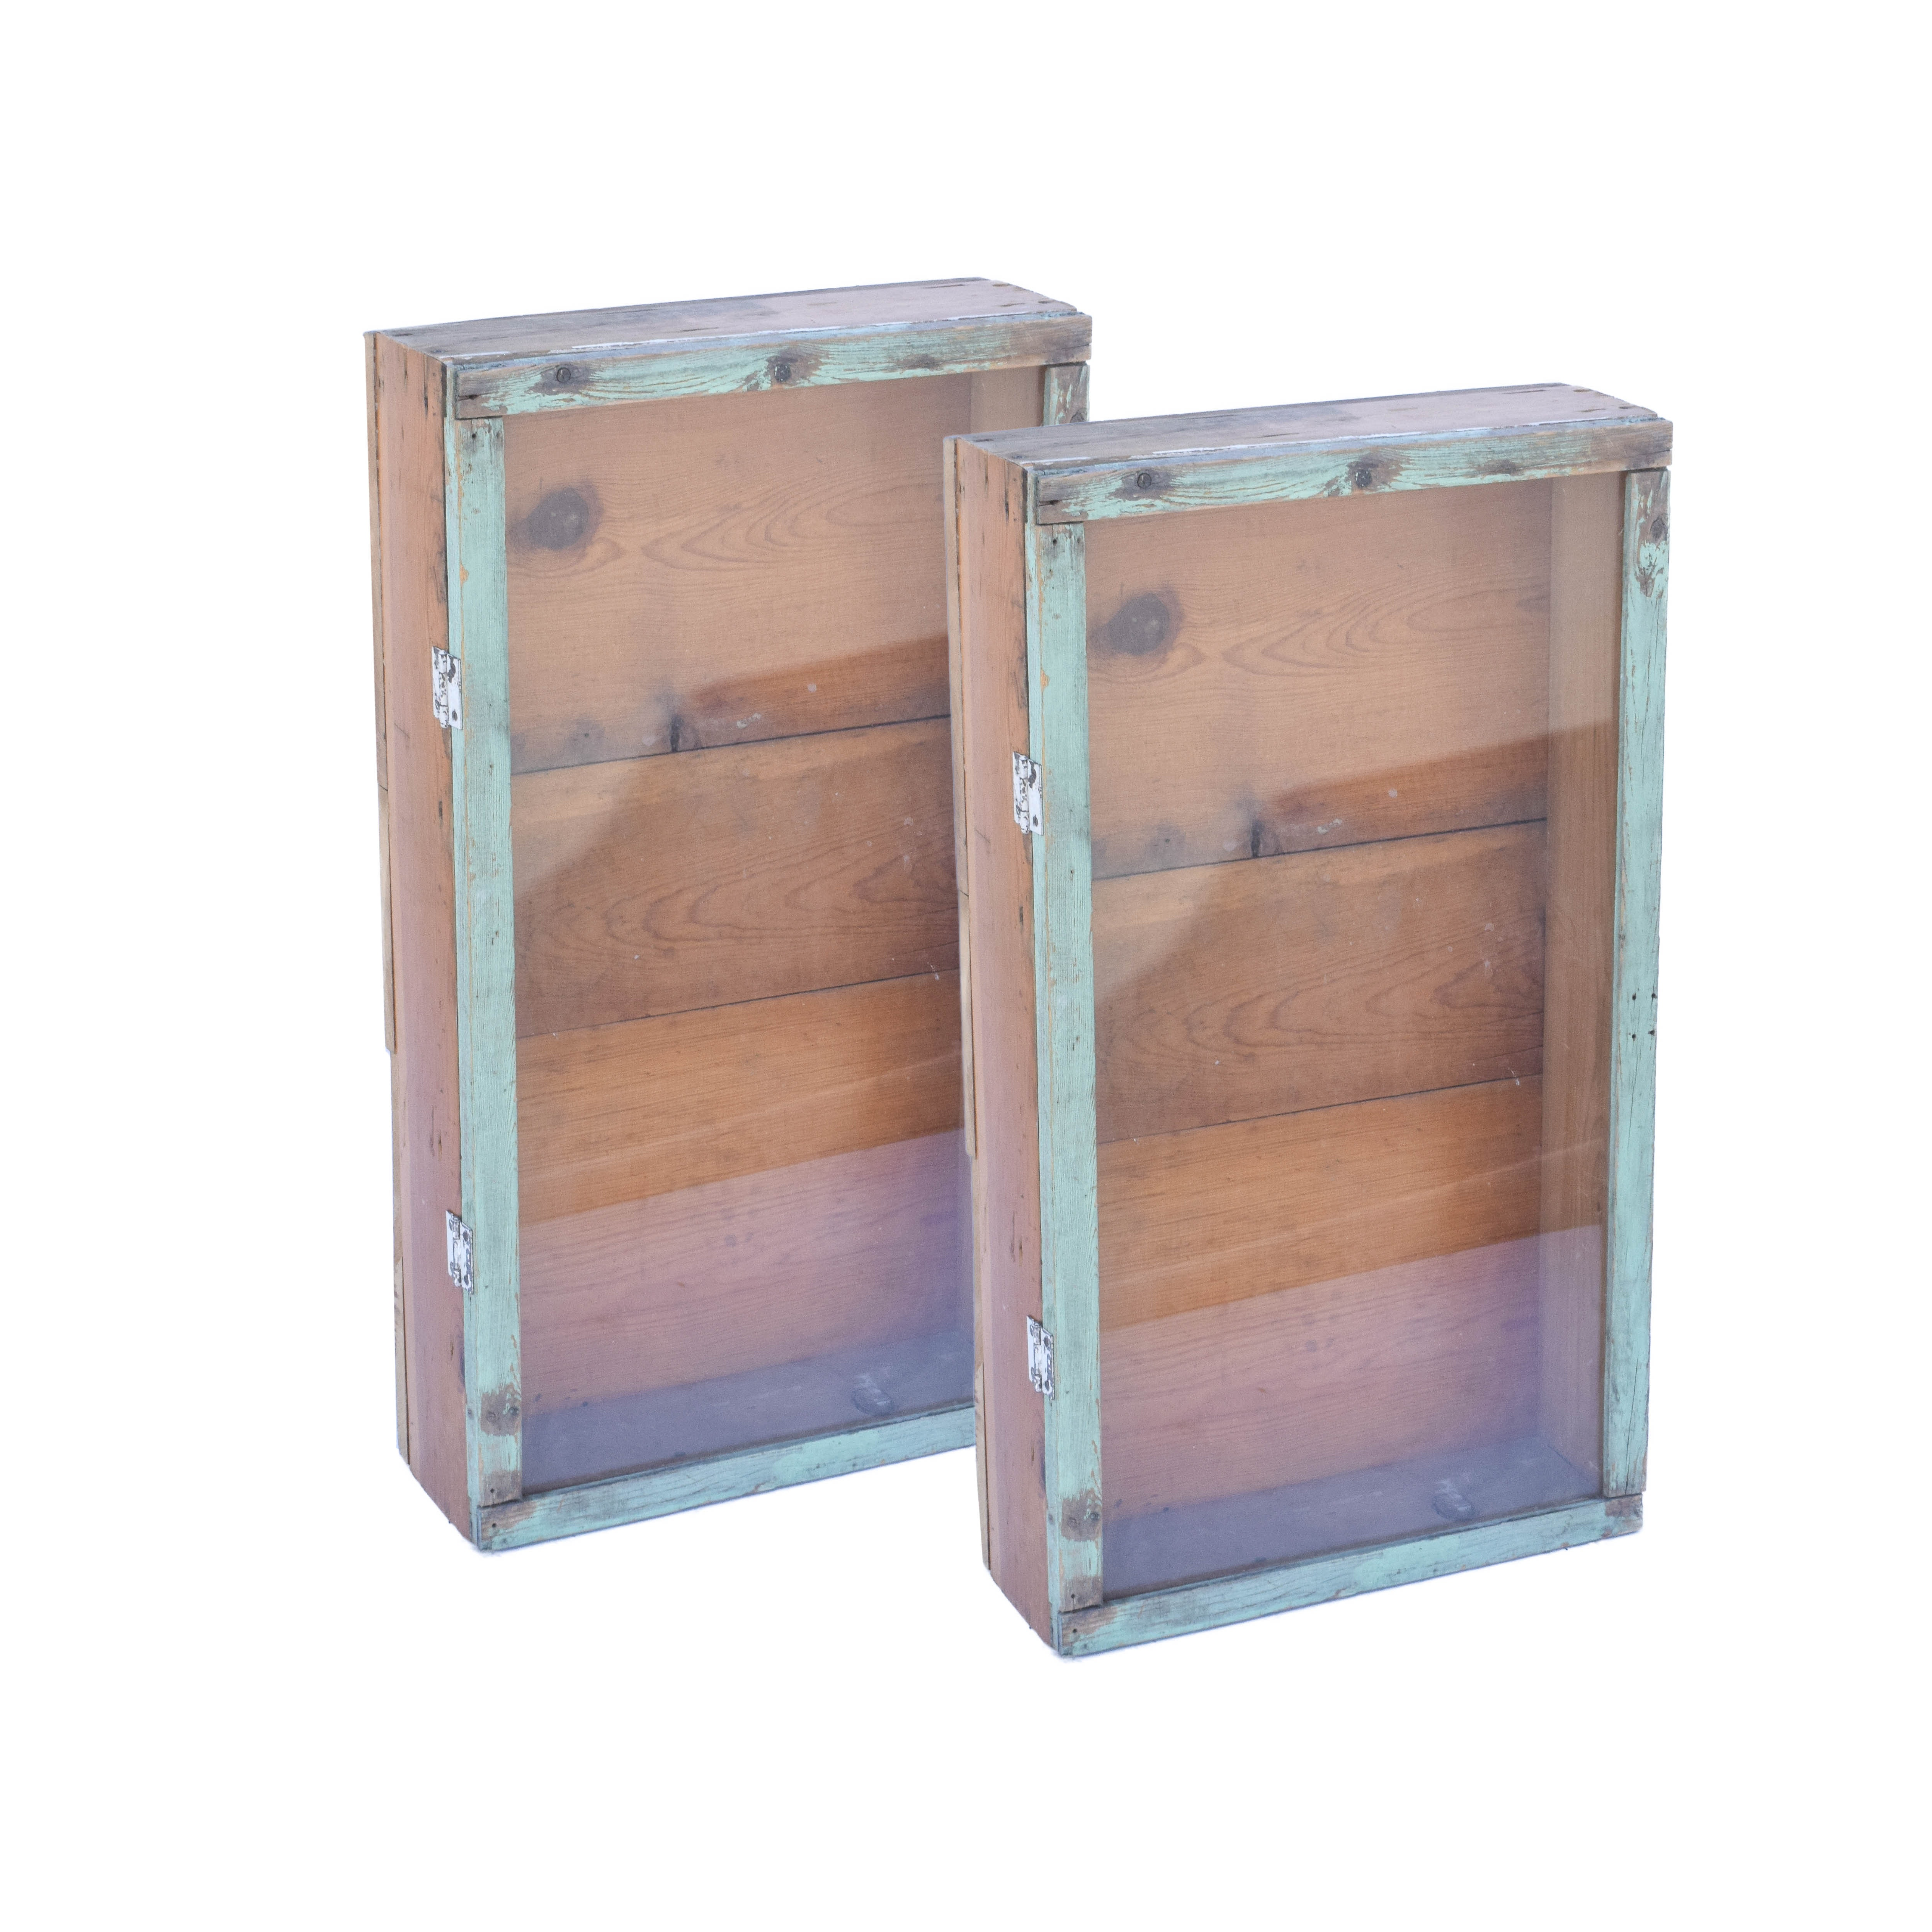 Distressed Wooden Display Cabinets